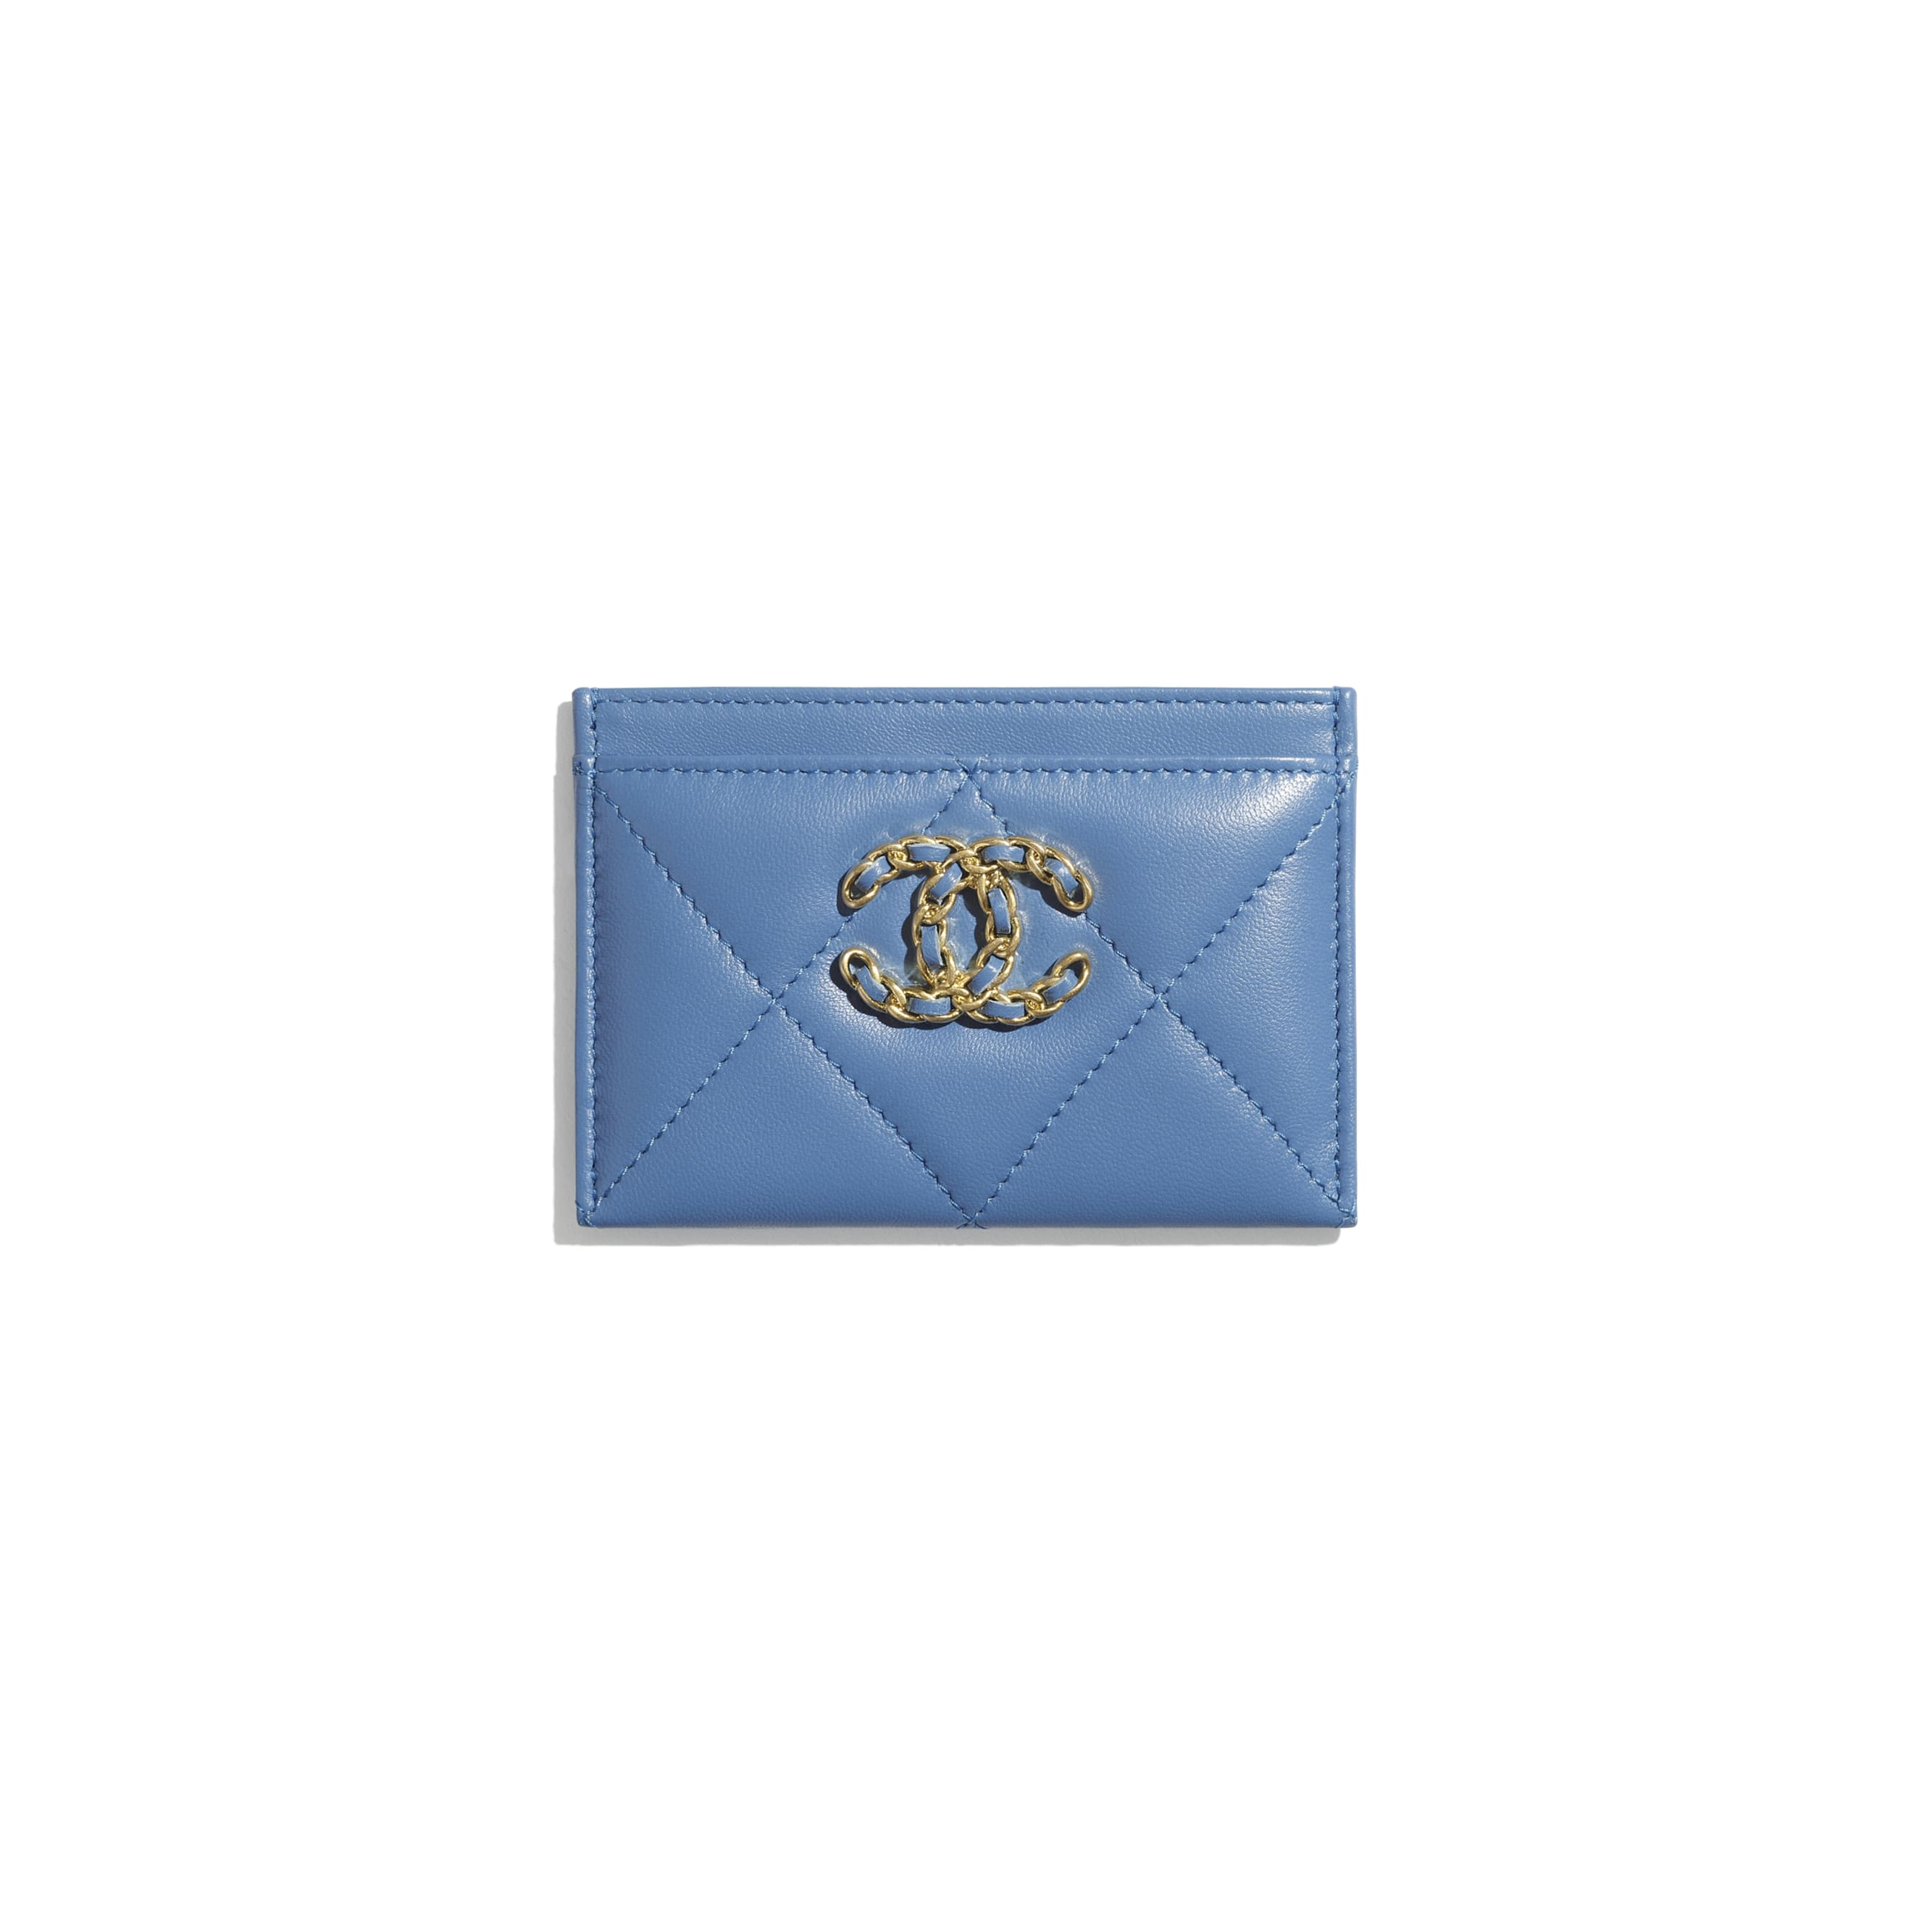 CHANEL 19 Card Holder - Blue - Lambskin, Gold-Tone, Silver-Tone & Ruthenium-Finish Metal - CHANEL - Default view - see standard sized version